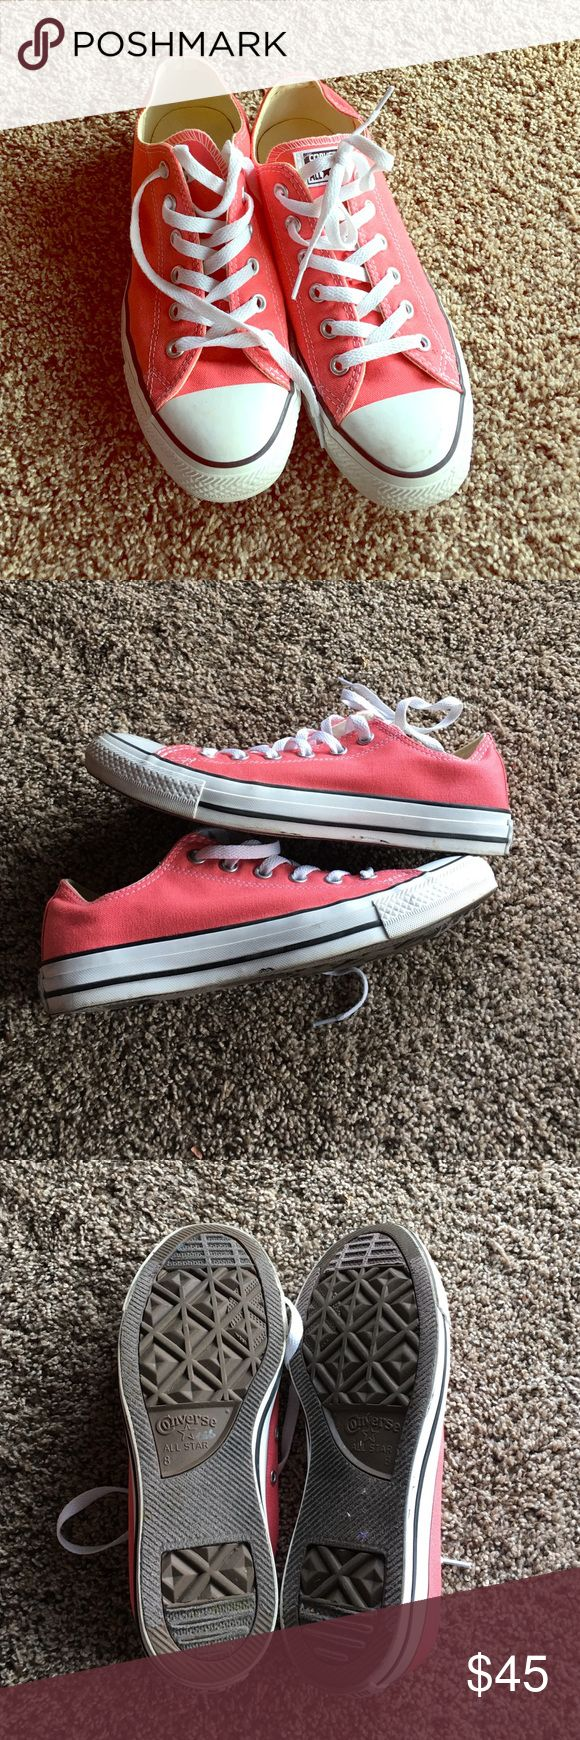 Coral Converse shoes Awesome converse shoes! Worn a handful of times! Some wear on sides and mark on top white part. Otherwise they looks good ☺️ true to size. Converse Shoes Sneakers